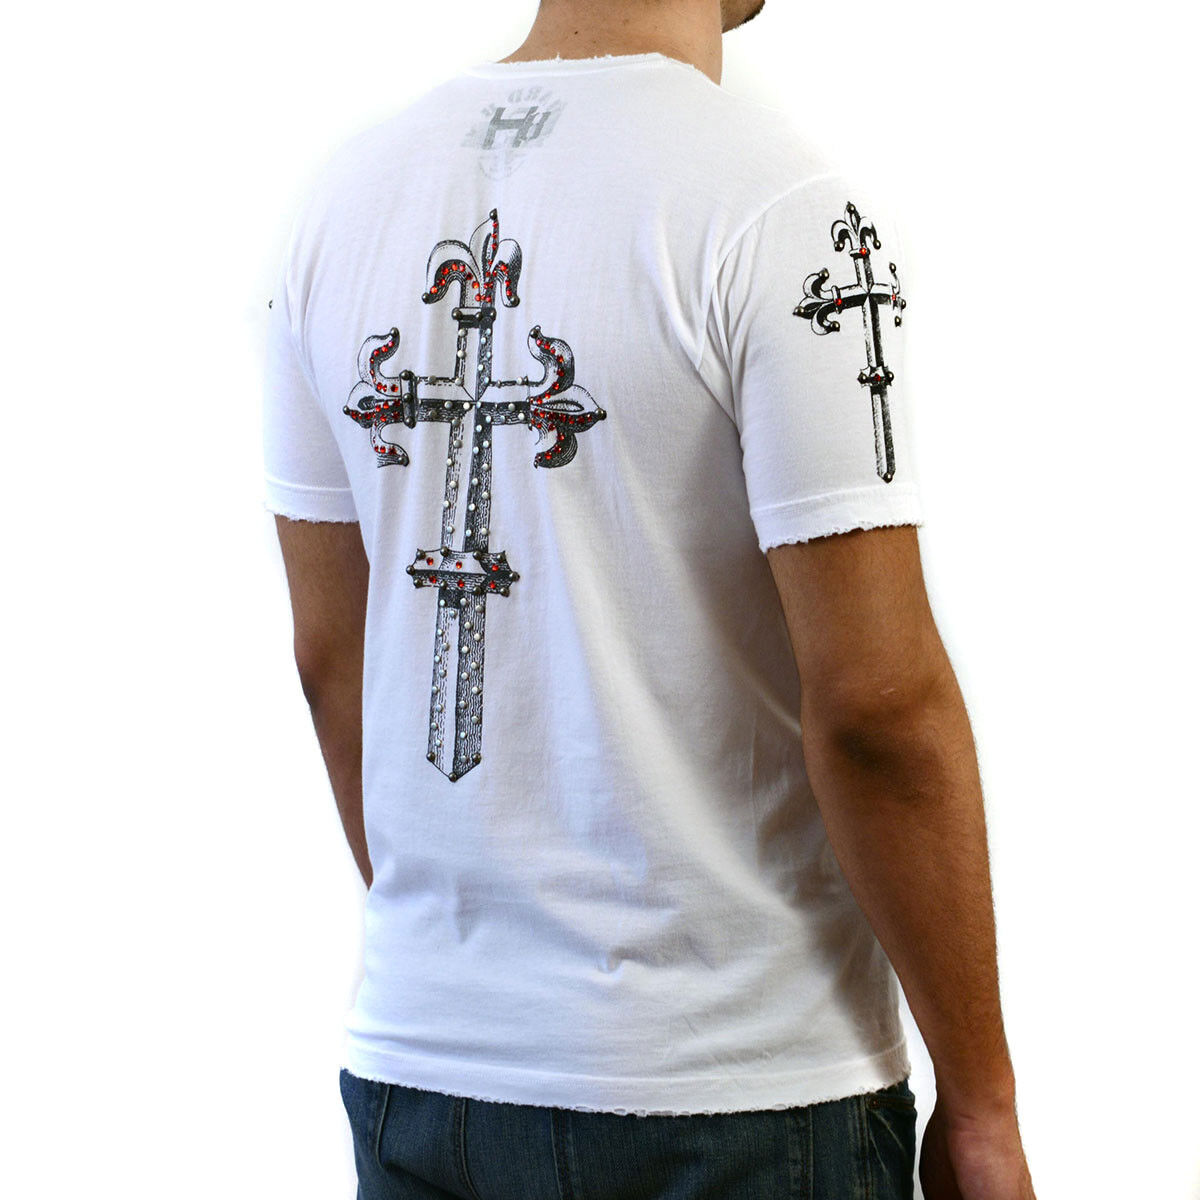 HARD 8 White T-shirt with rhinestone embellished graphics